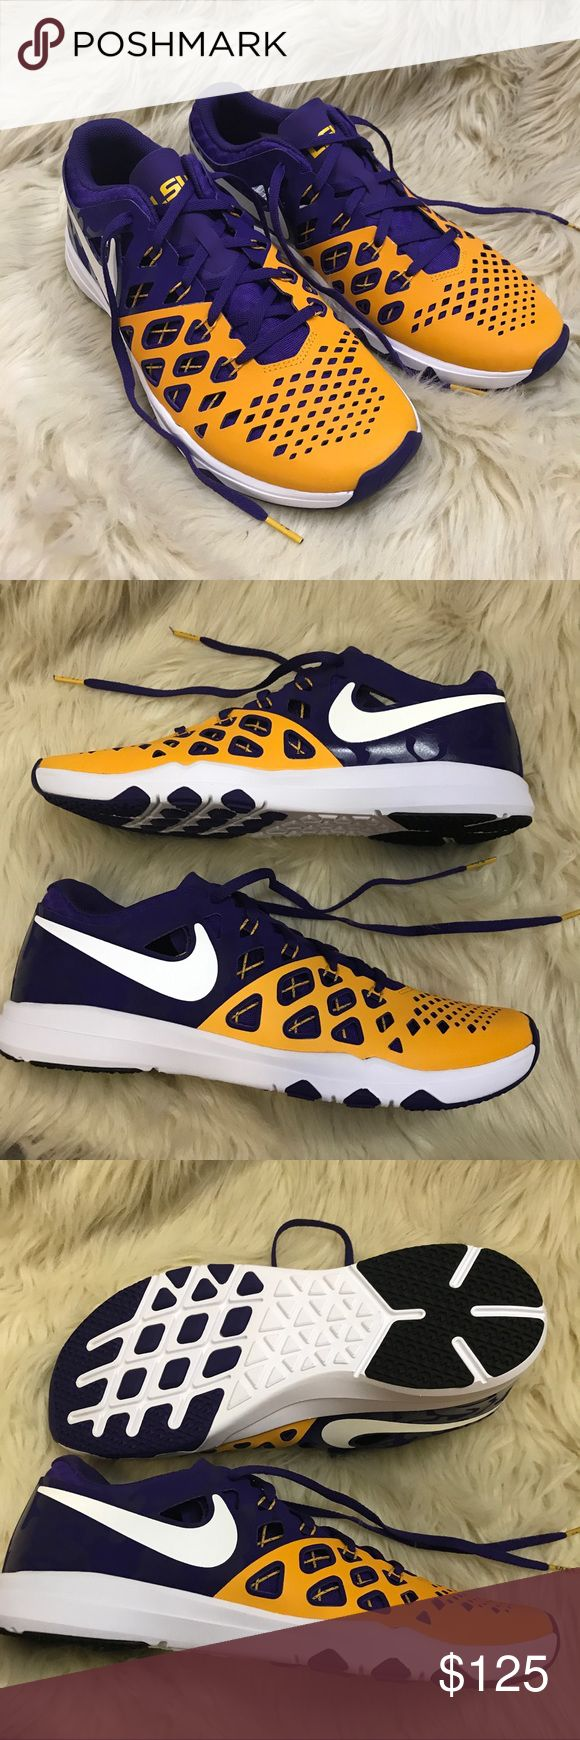 NIKE limited edition LSU college sneakers ✨BNWT!✨  ✅Sizing: TRUE TO SIZE  Never worn or used!   2+ BUNDLE = SAVINGS!  ‼️= PRICE FIRM!   AUTHENTIC BRANDS, ALWAYS!  ✈️ SUPER FAST SHIPPING!    USE THE OFFER BUTTON TO NEGOTIATE!  ❓ Questions? Just comment! ❤️  ❤✌HAPPY POSHING!✌❤️ Nike Shoes Athletic Shoes